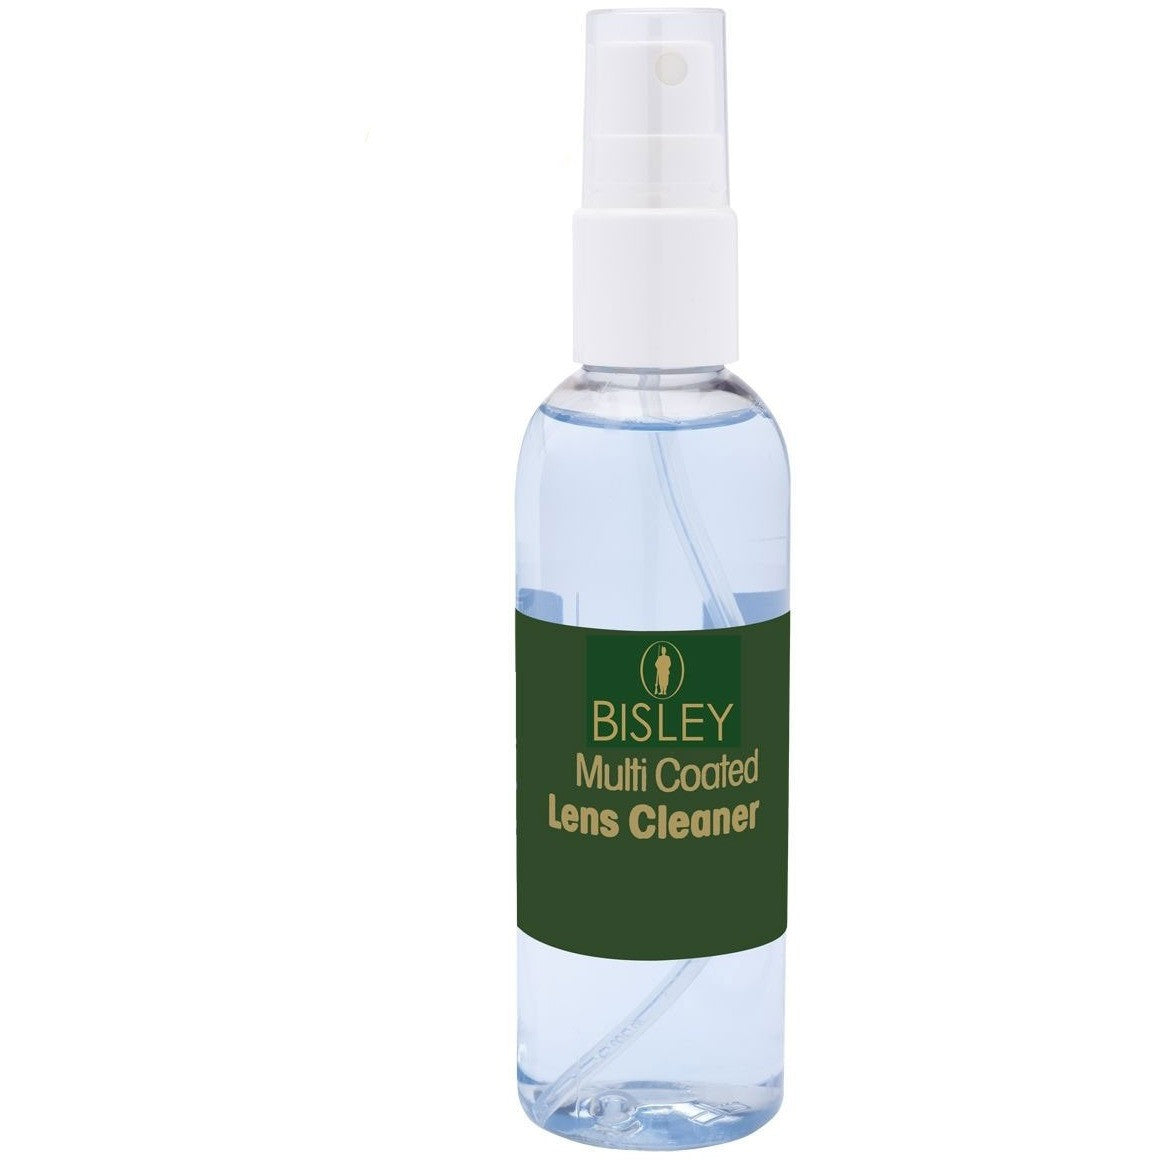 Bisley Lens Cleaner, www.clunycountrystore.co.uk